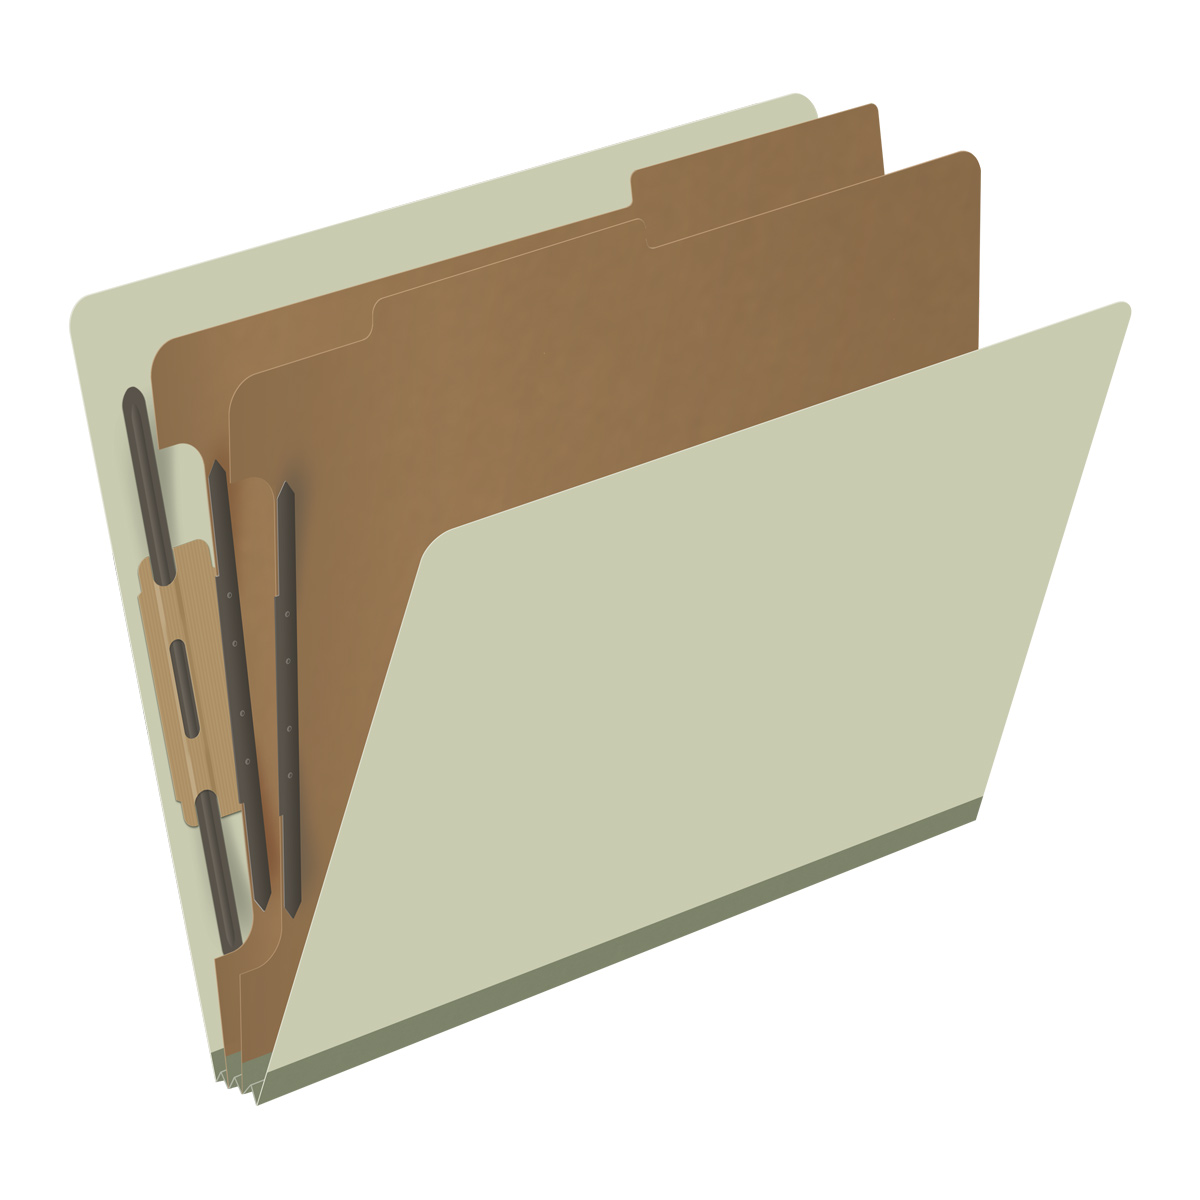 DV-S42-26-3GRN - Pressboard Classification Folders, Full Cut End Tab, Letter Size, 2 Dividers, Pale Green (Box of 10)